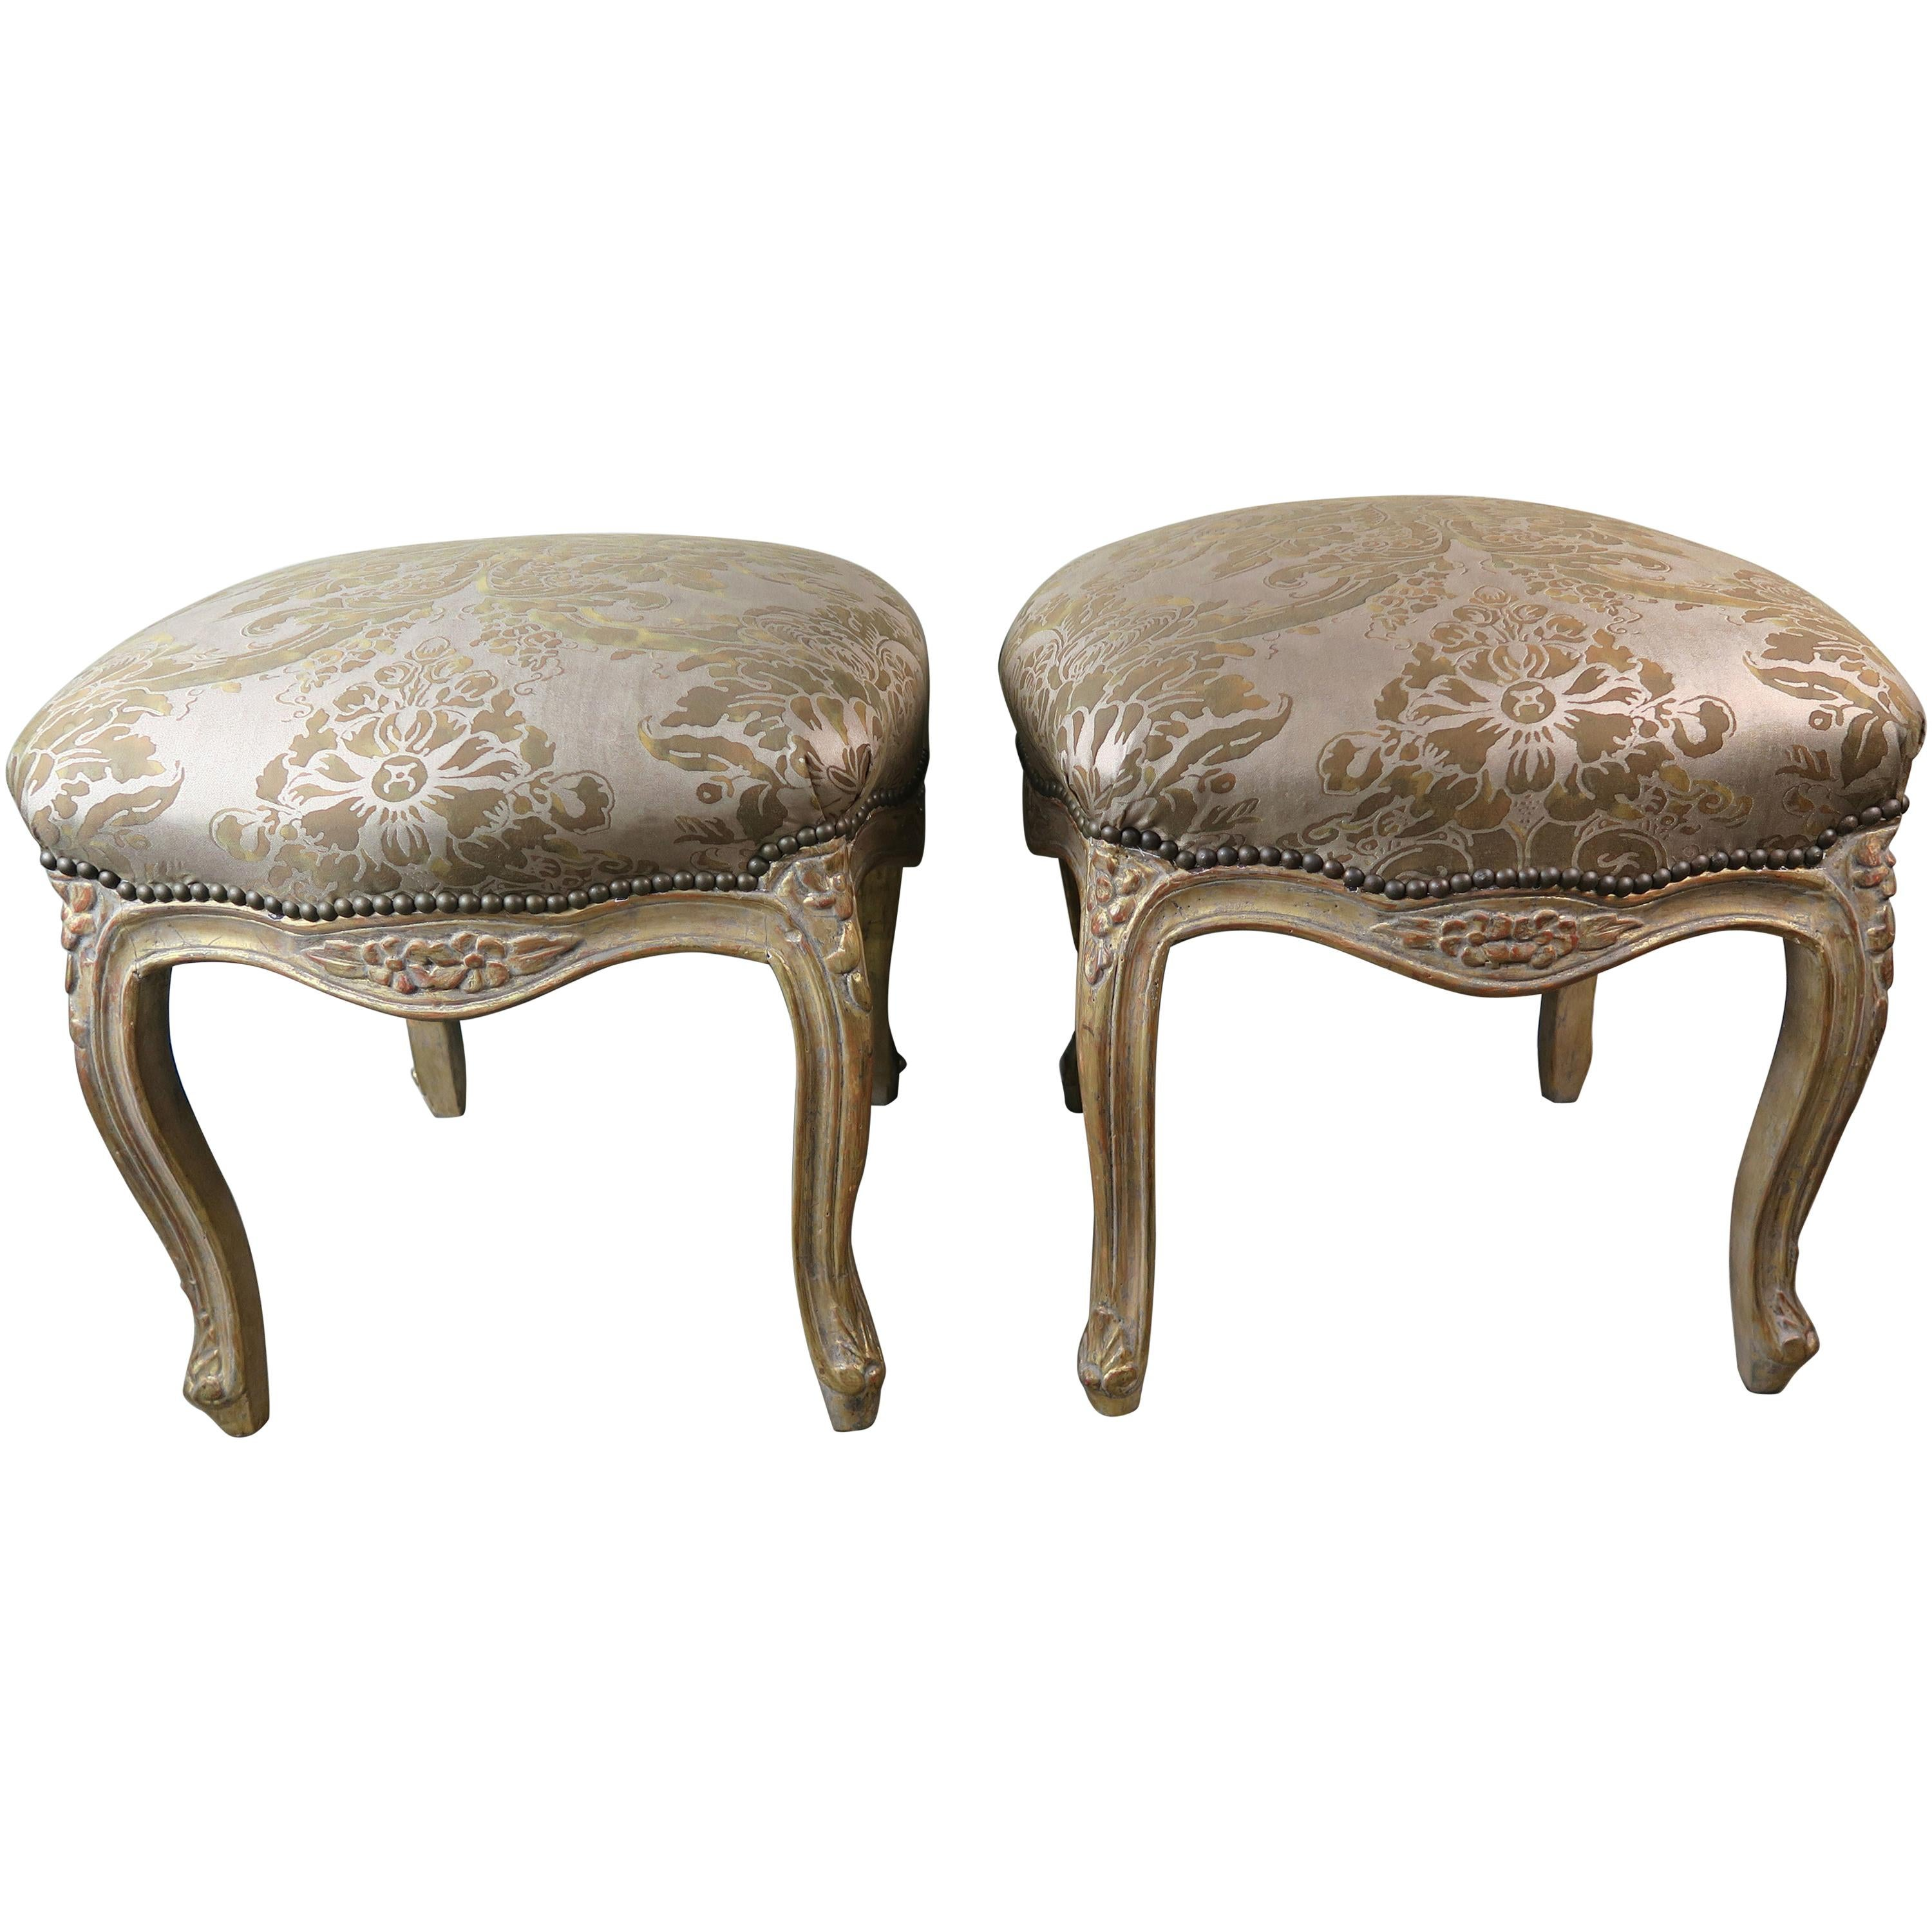 Pair of Gilt Wood Fortuny Upholstered Benches